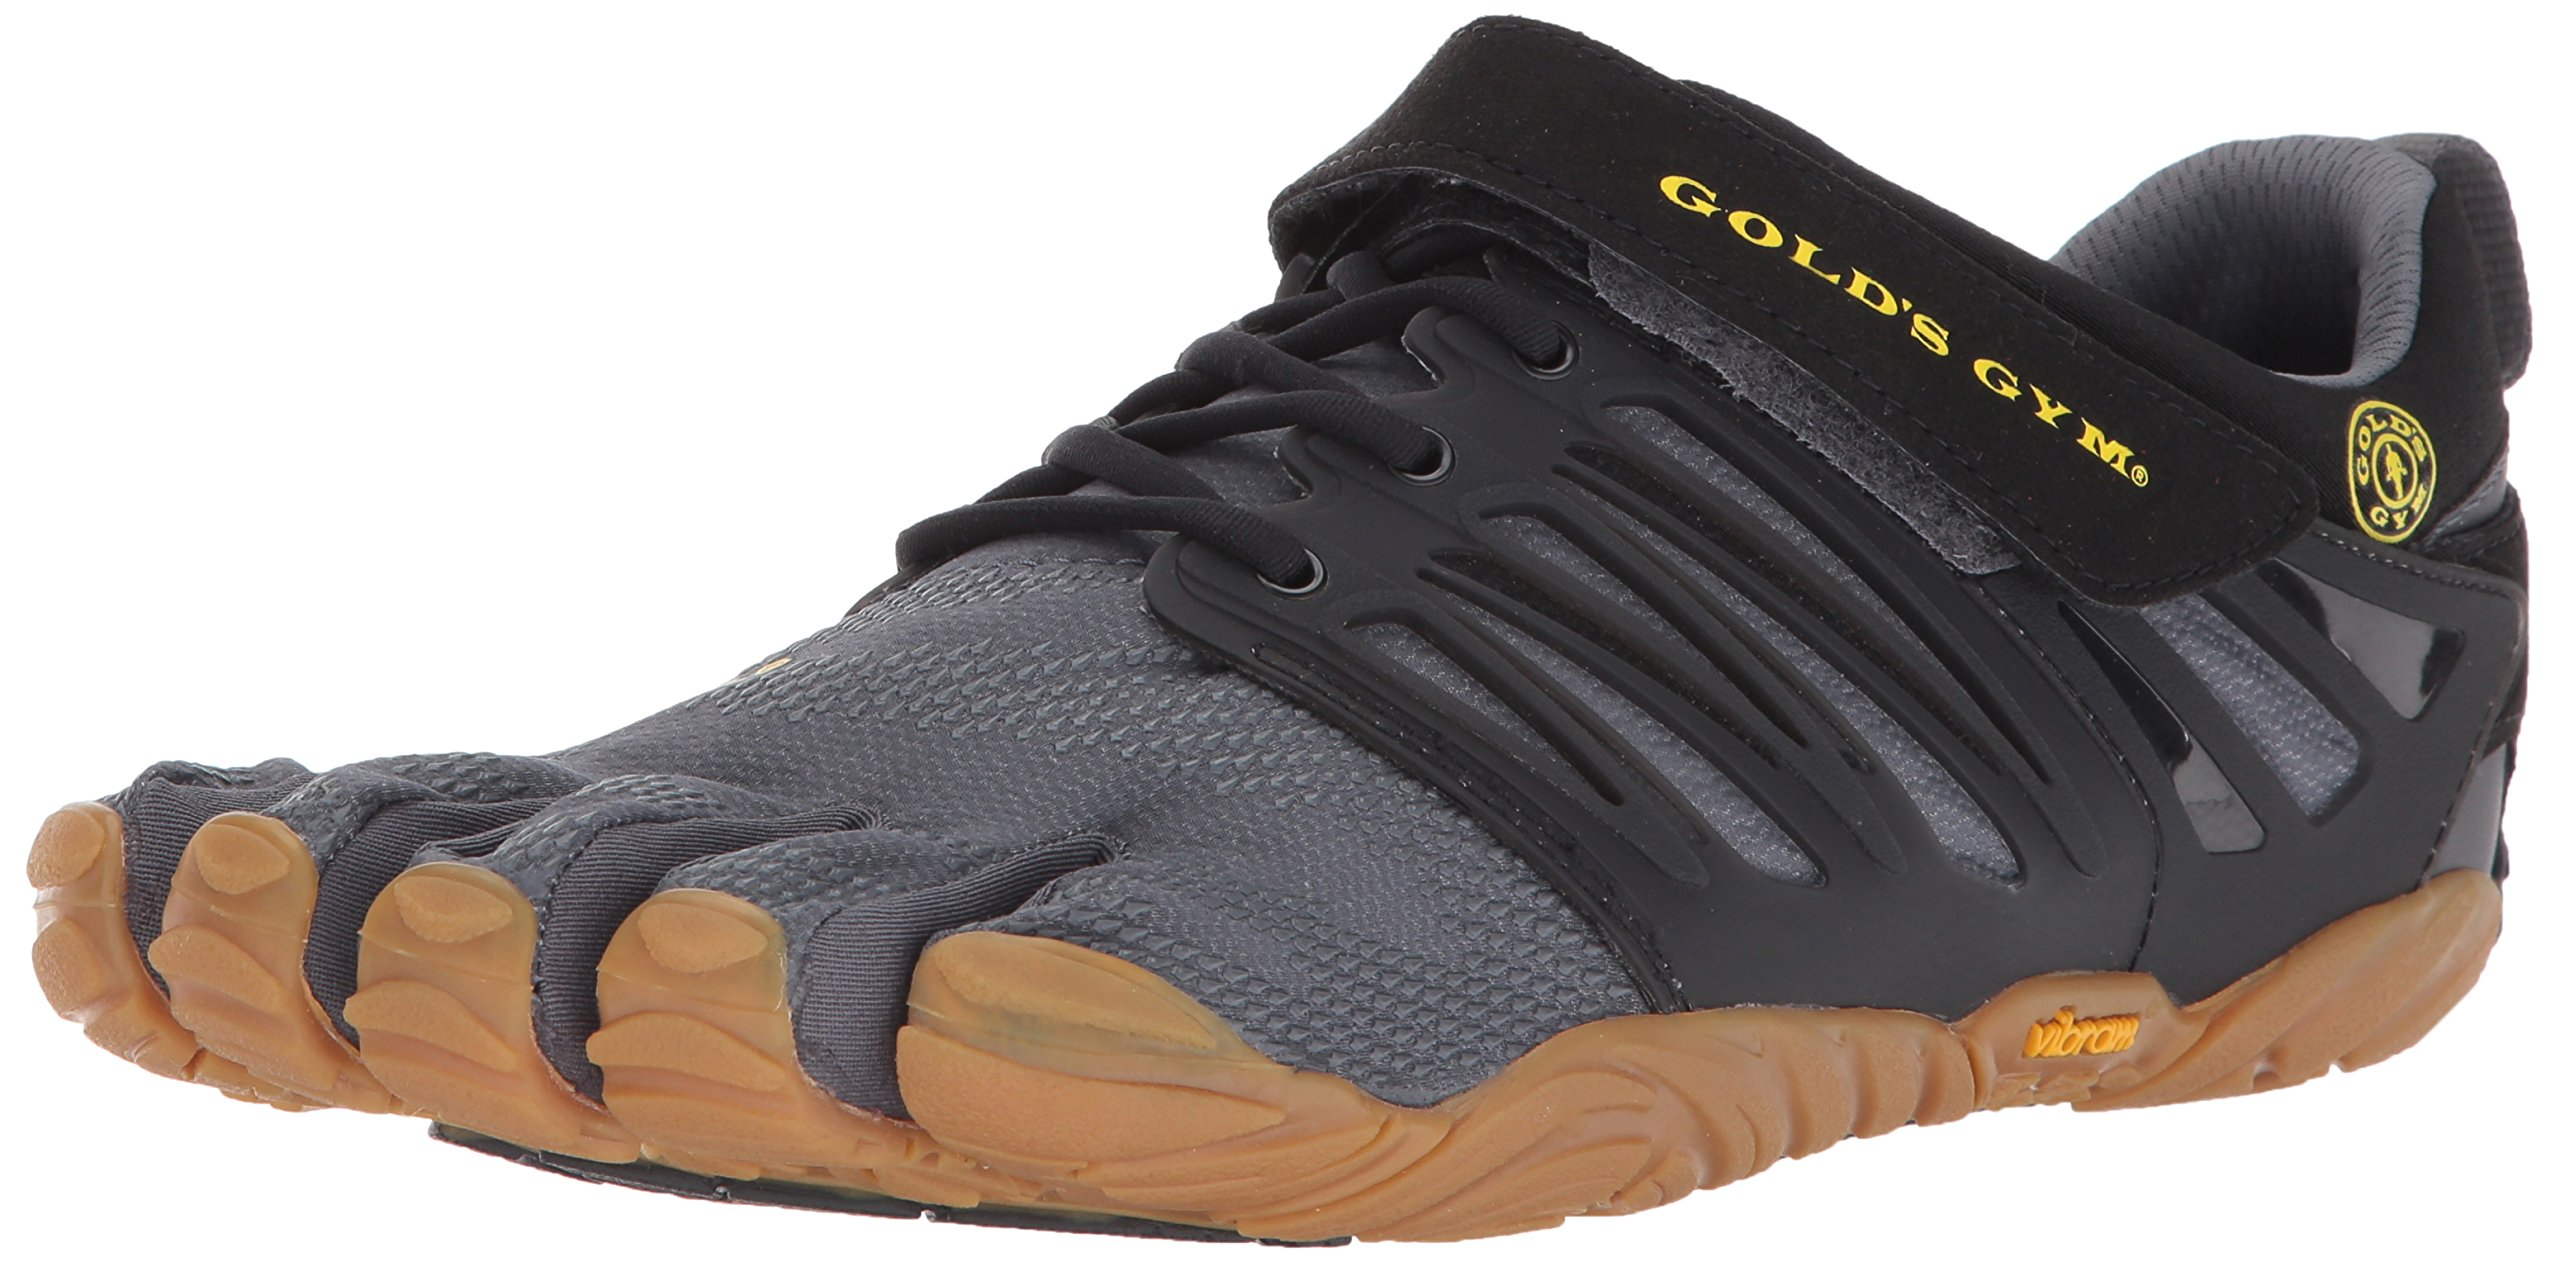 Vibram Five Fingers Men's V-Train Fitness Shoe (43 EU/9.5-10, Black/Grey/Honey) by Vibram